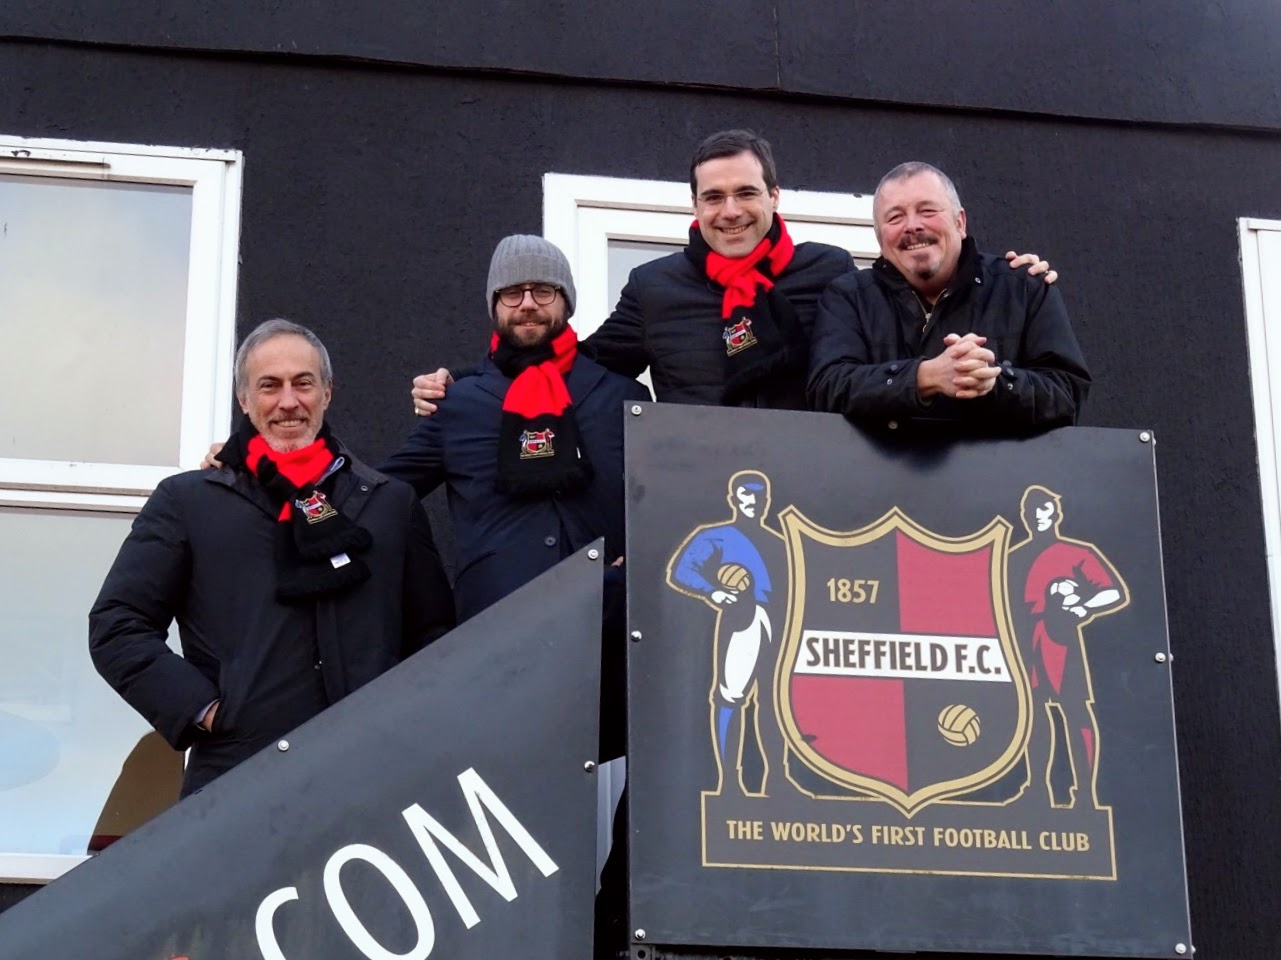 Members of Sheffield FC and LSG Sports stand on steps outside the Club's office